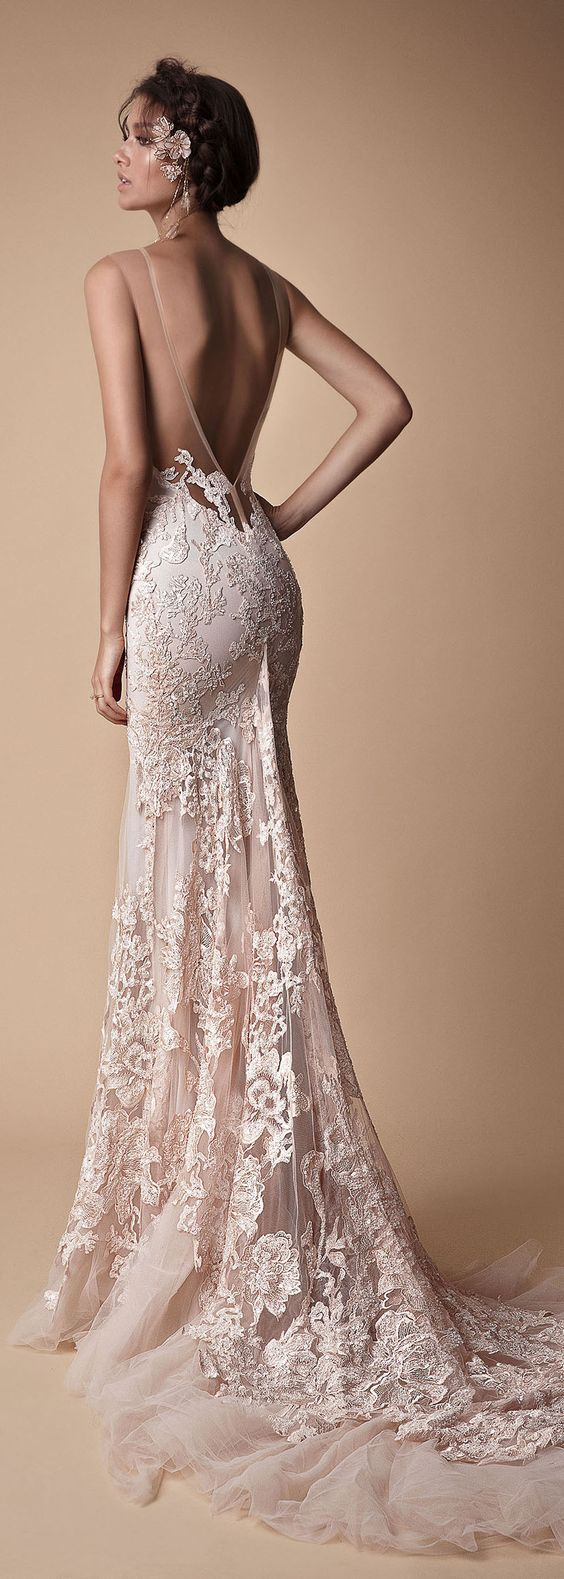 so many styles & silhouettes, a dream dress for every bride. We collected for you some sexy wedding dresses which are elegant alternatives for your big day!